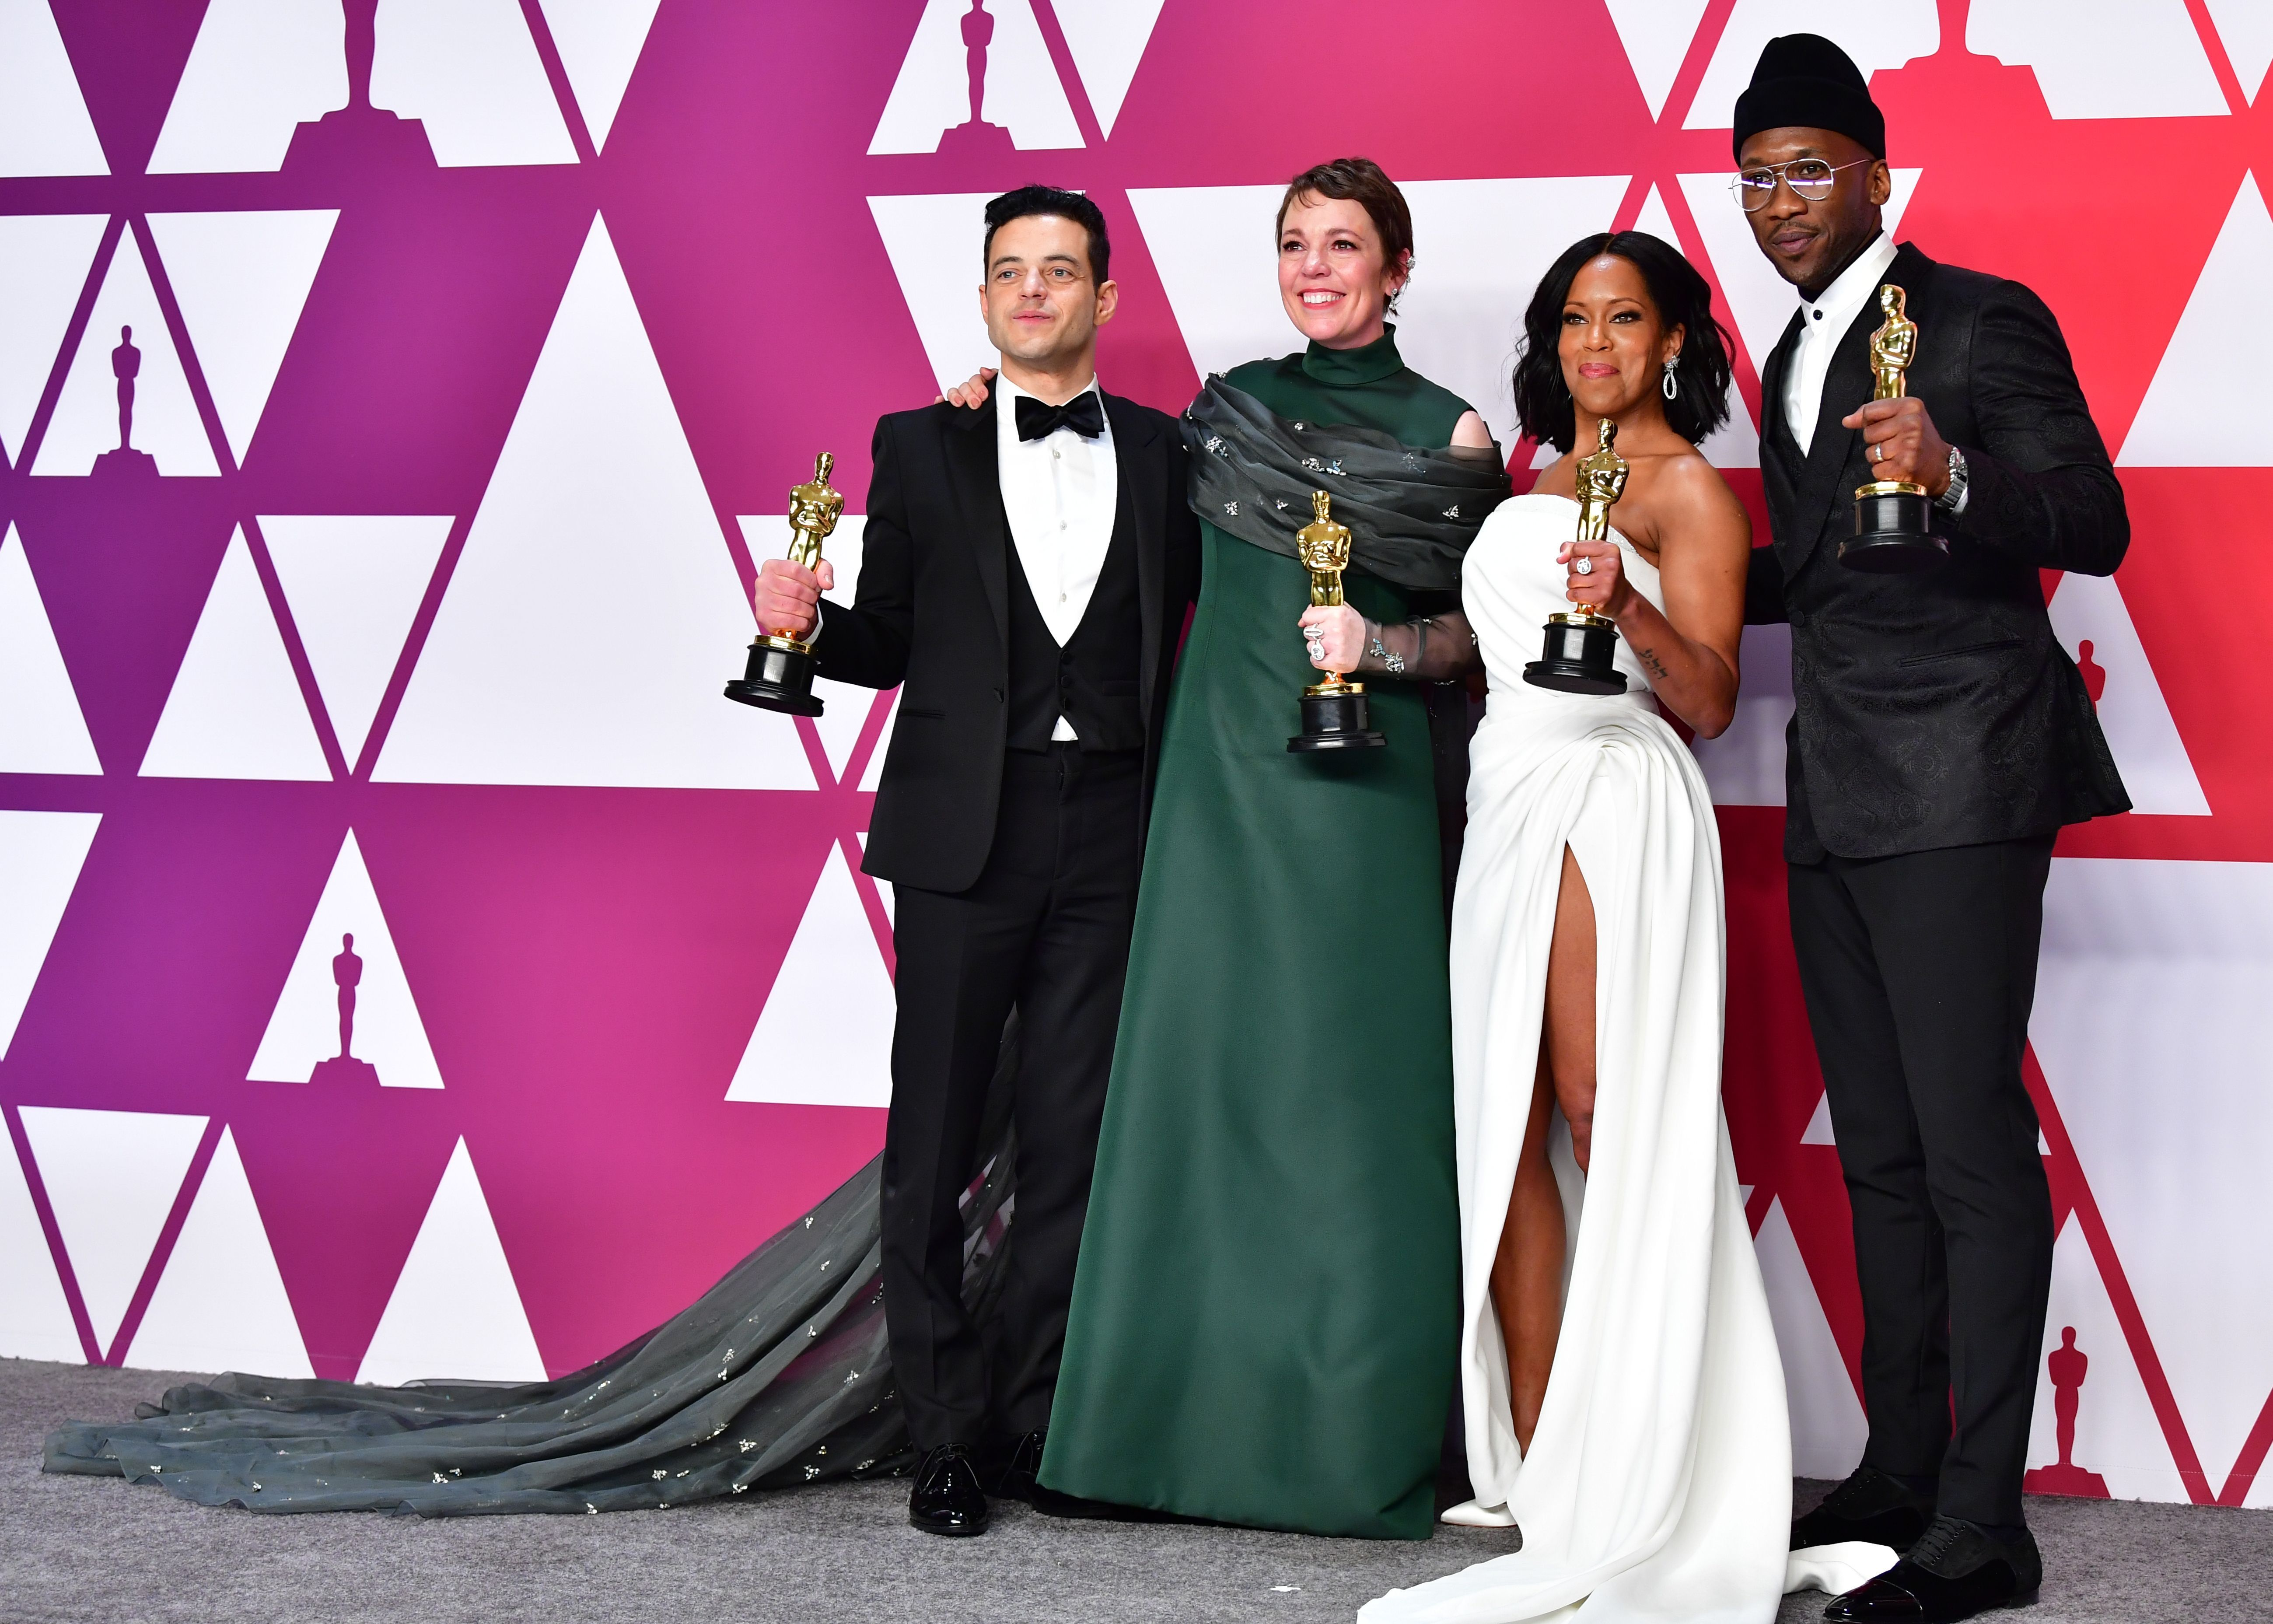 Oscars 2019 Show Recap - Academy Awards Best and Worst Moments 2019